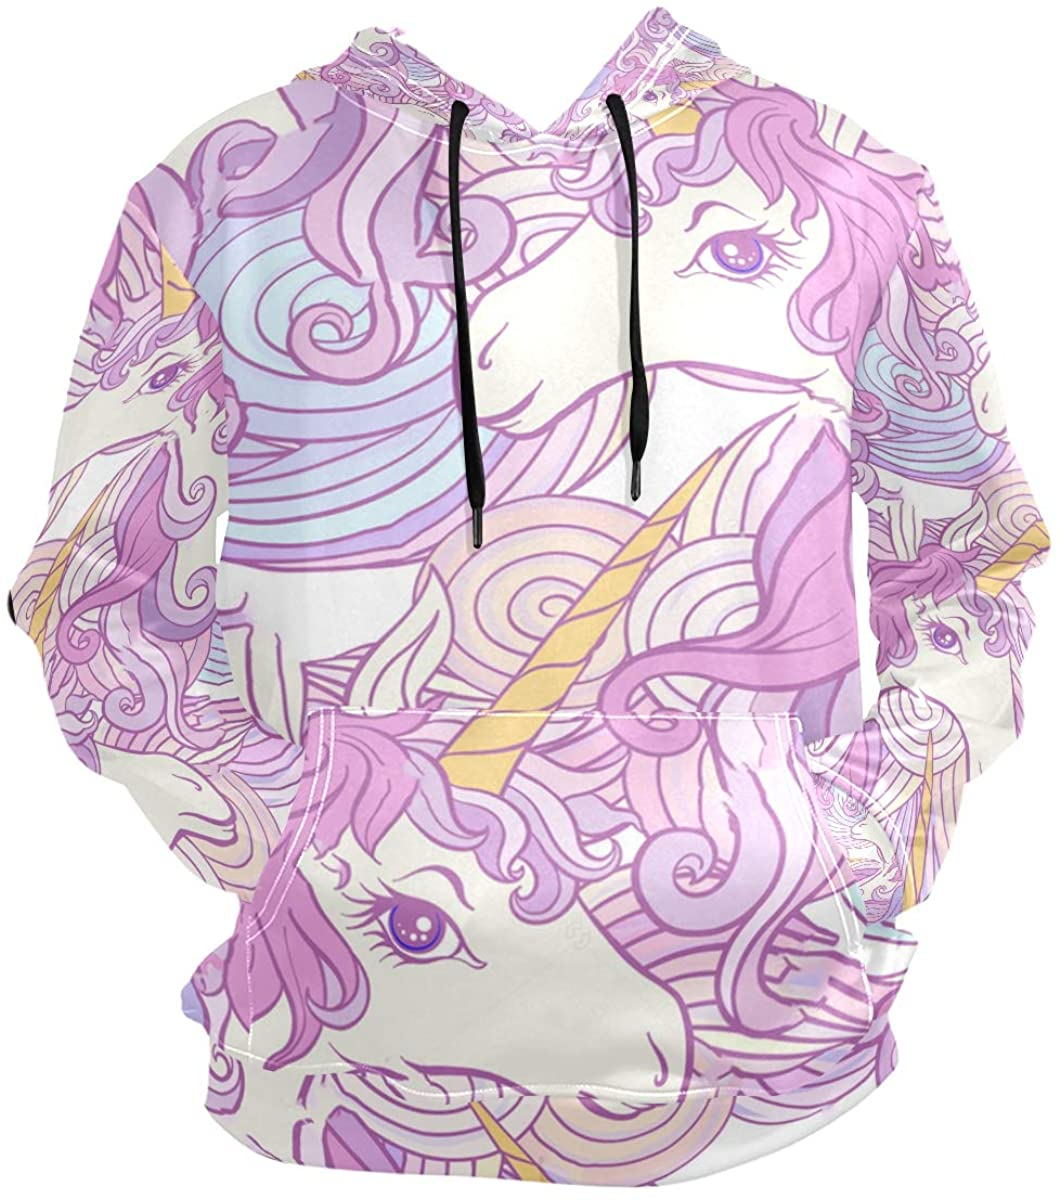 SLHFPX 3D Hoodie Unicorn Rainbow Pullover Hooded Sweatshirts Long Sleeve Shirt